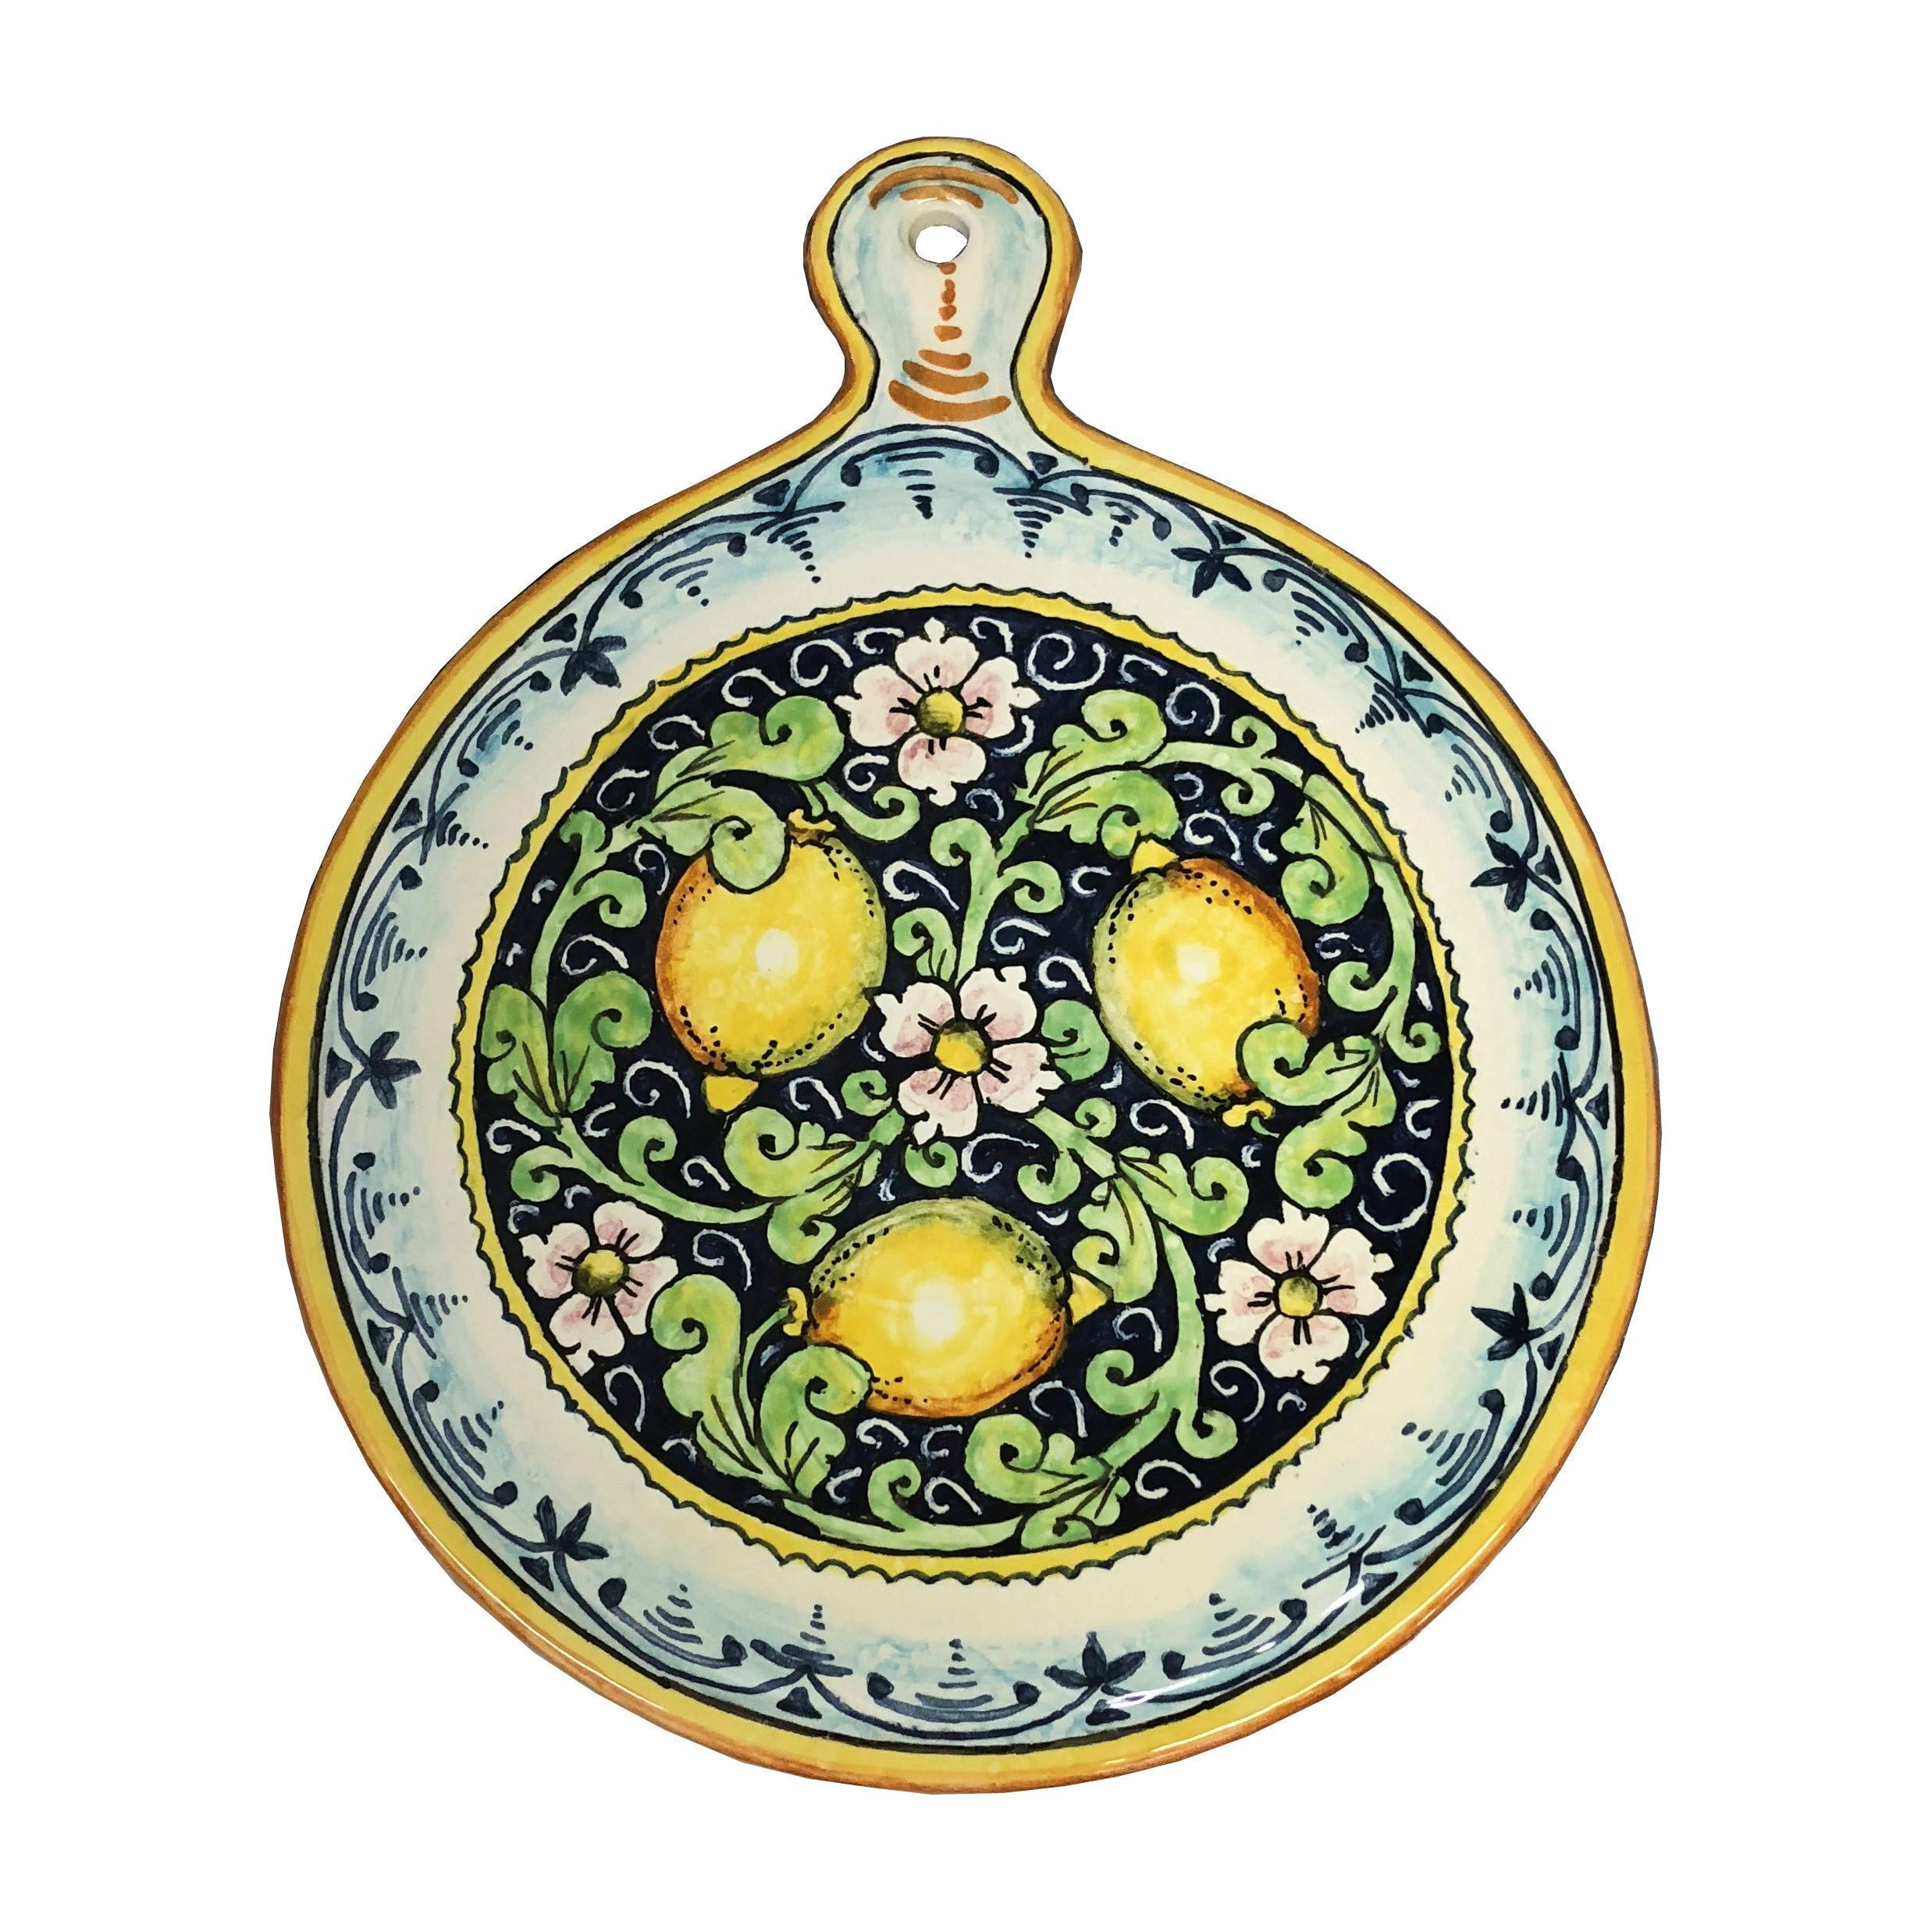 CERAMICHE PARRINI - Italian Ceramic Art Utensil Kitchenware Tile Trivet Pottery Decorated Lemons Hand Painted Made in ITALY Tuscan by CERAMICHE D'ARTE PARRINI since 1979